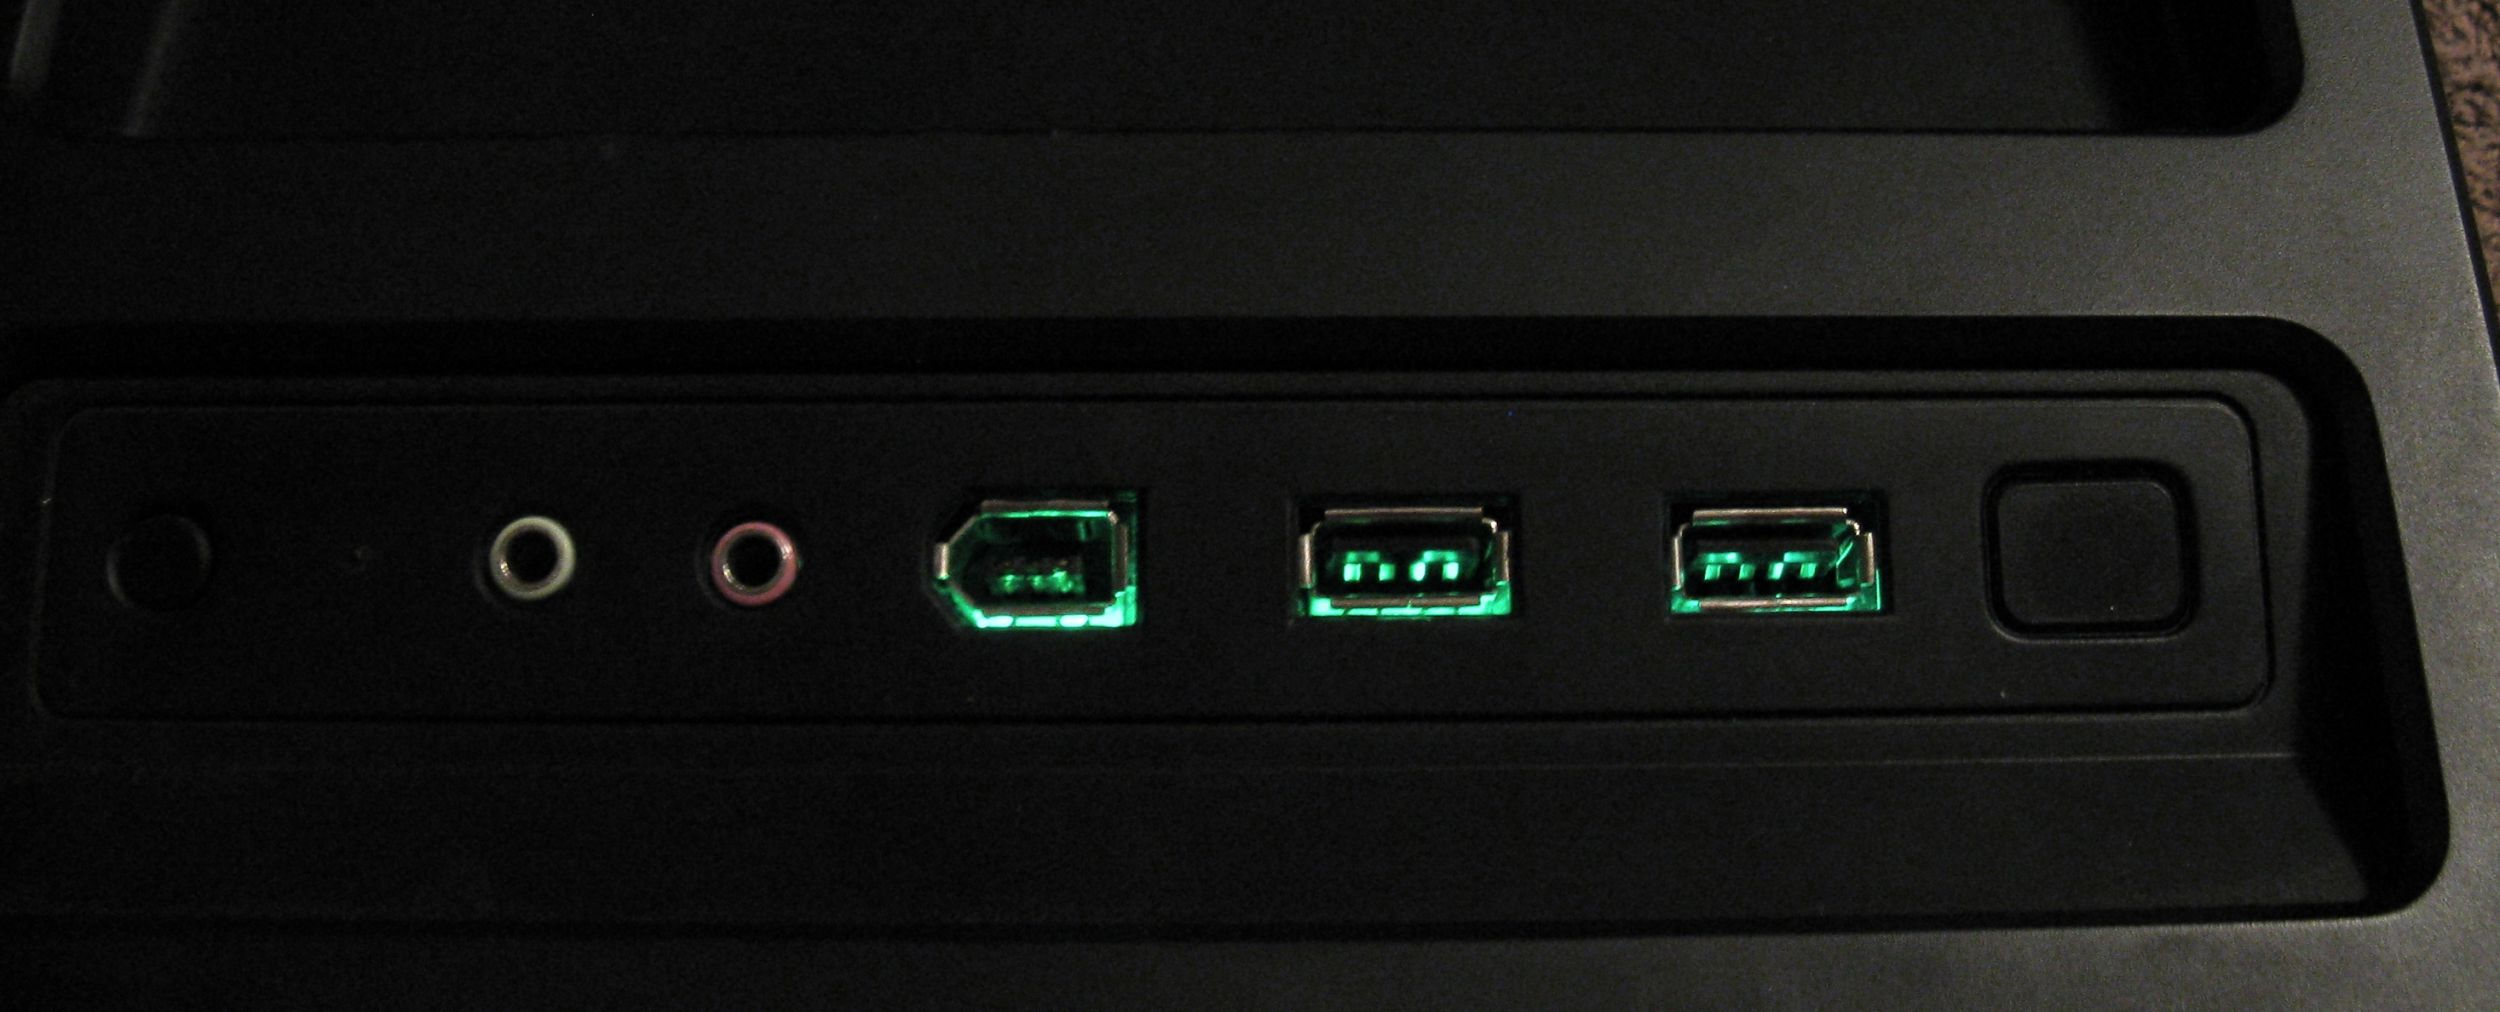 led mod for usb ports